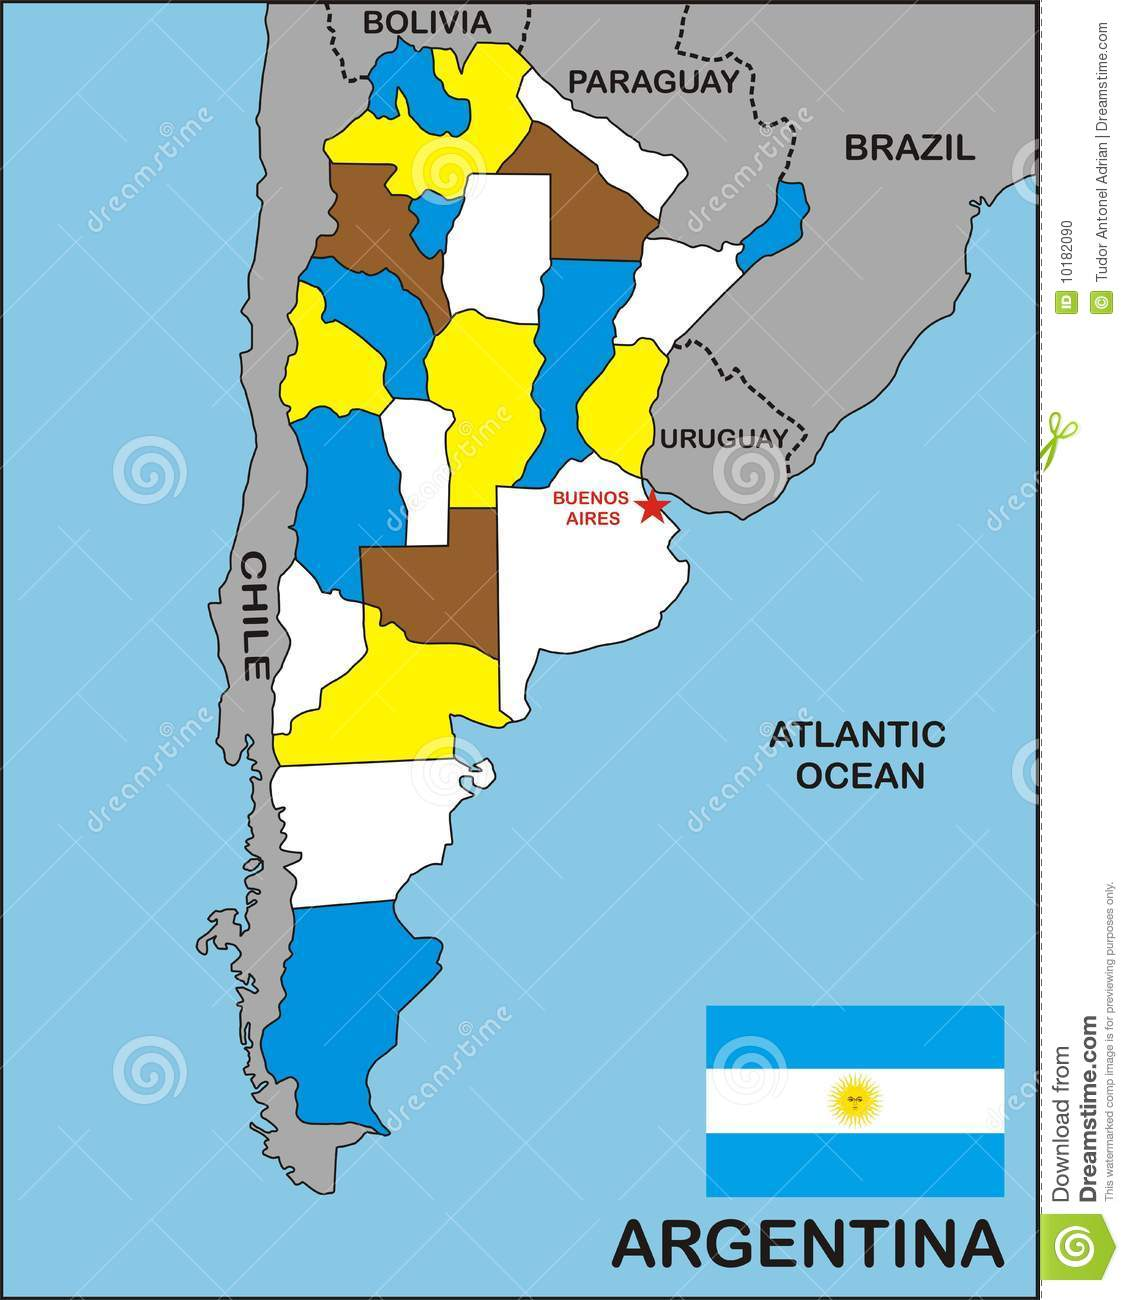 Argentina Map Stock Photo Image - Argentina map download